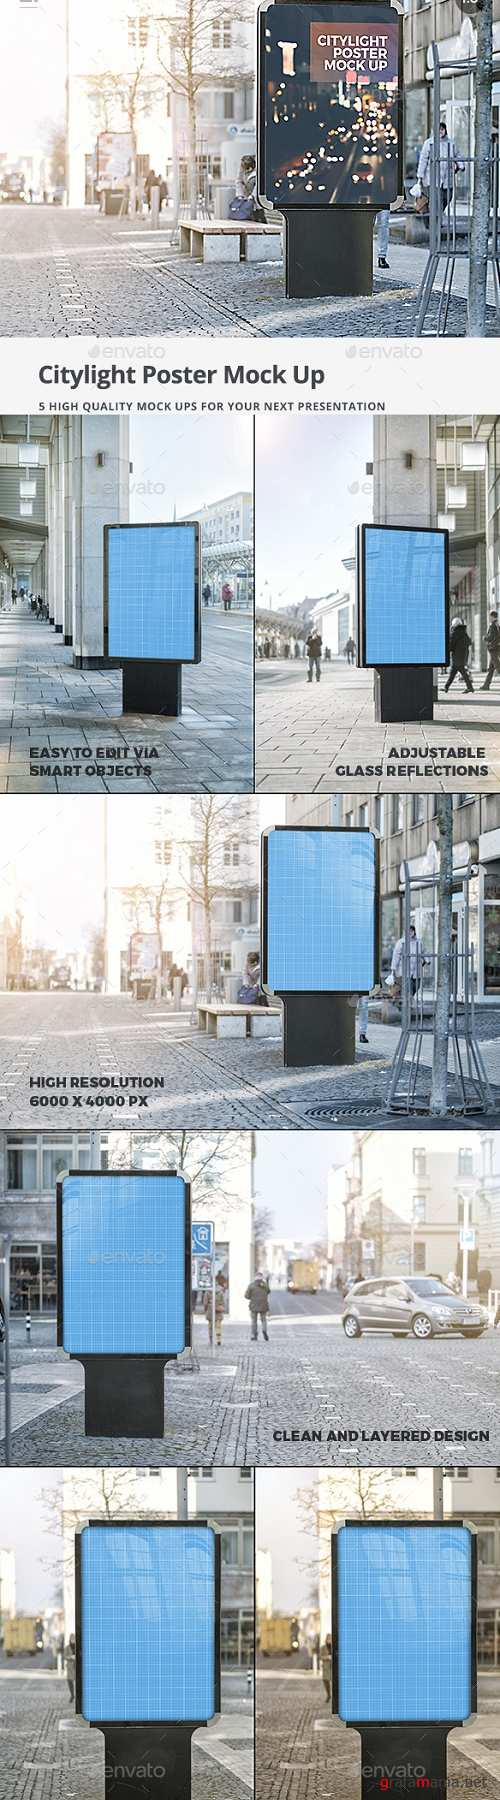 City Outdoor Mock-Up Pack - 19491904